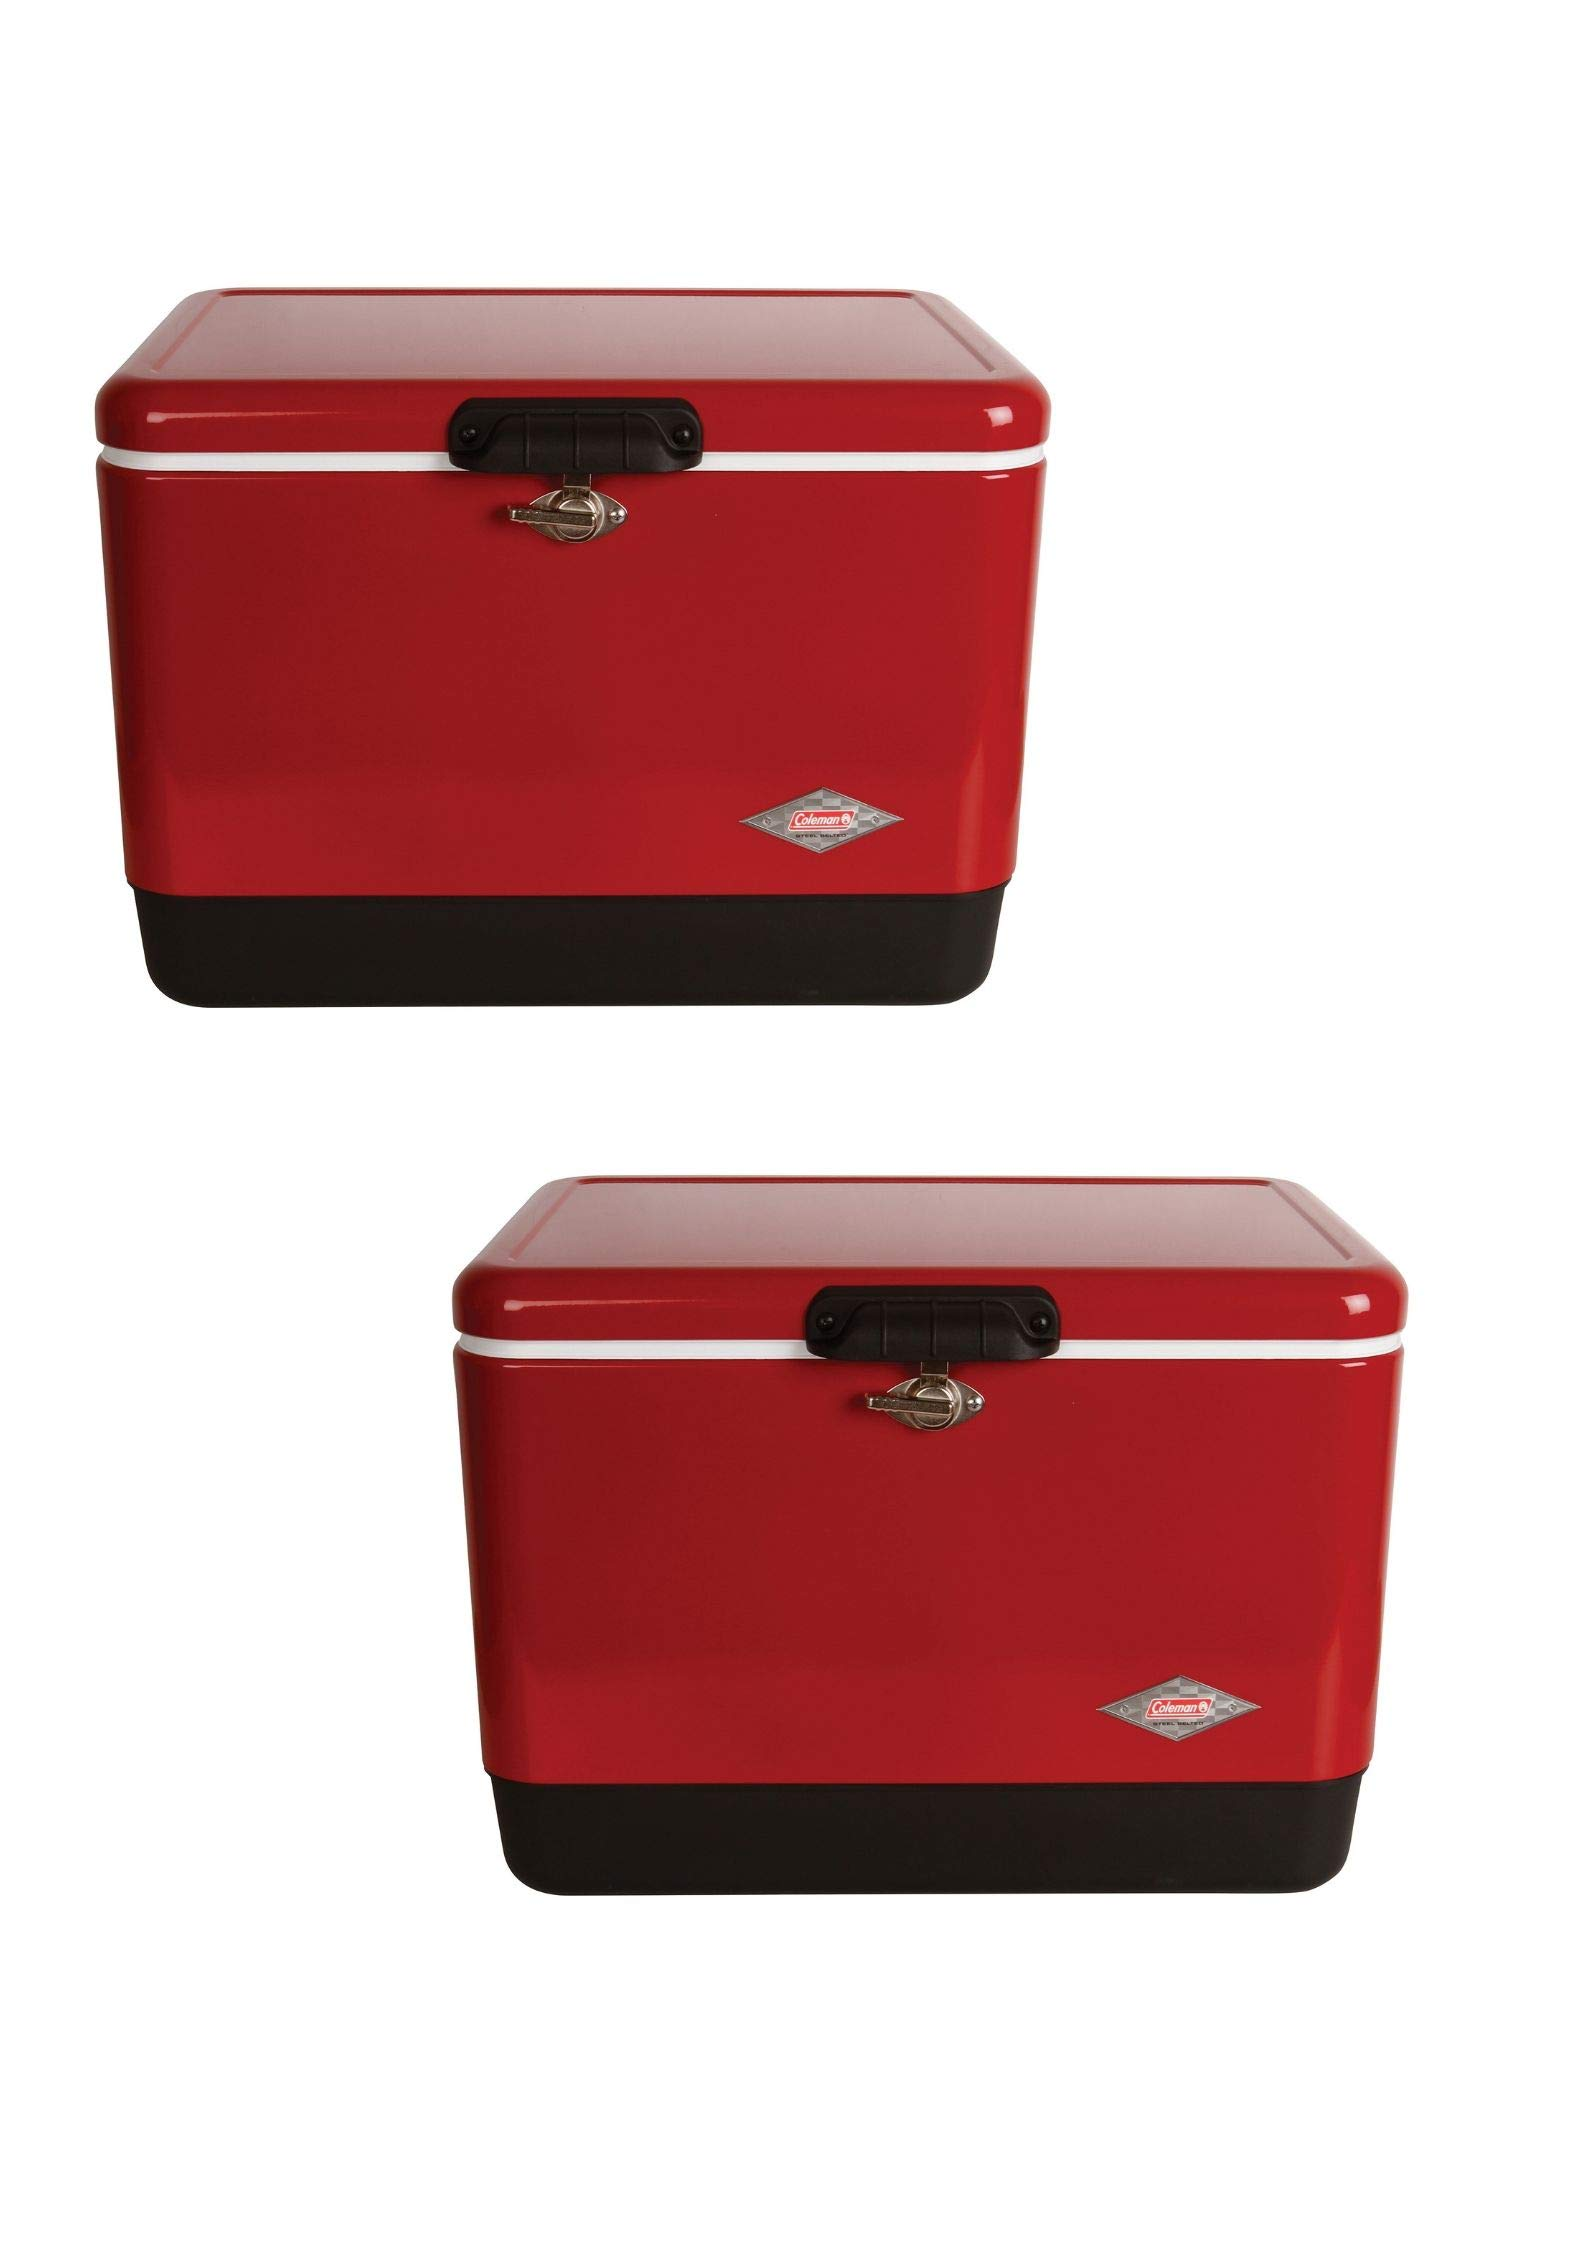 Coleman Steel-Belted Portable 54 Quart Cooler - Red (2 Pack,Red)